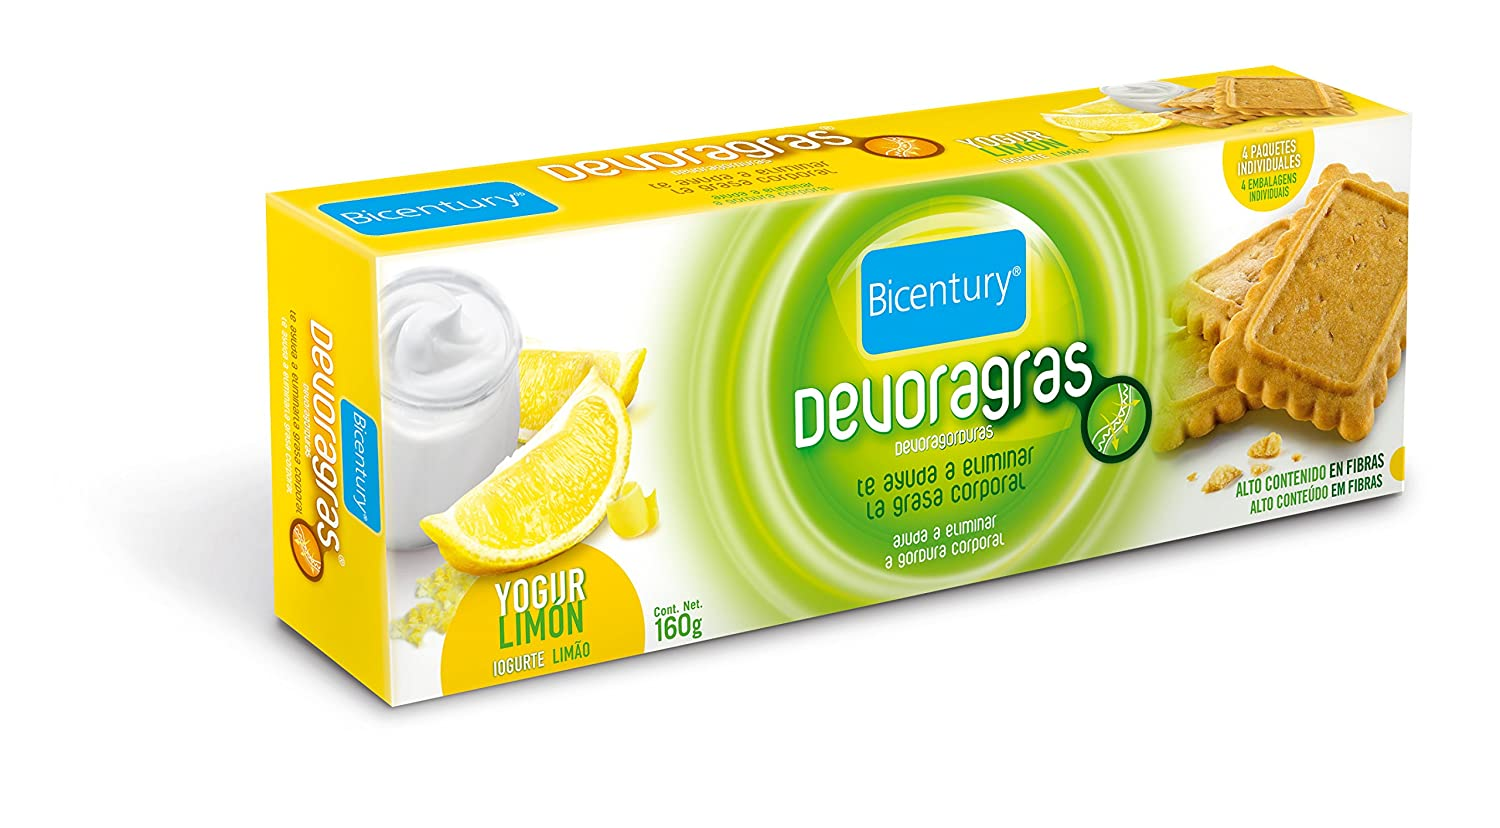 Bicentury Galletas devoragras Yogur Limón - 160 gr: Amazon.es: Amazon Pantry